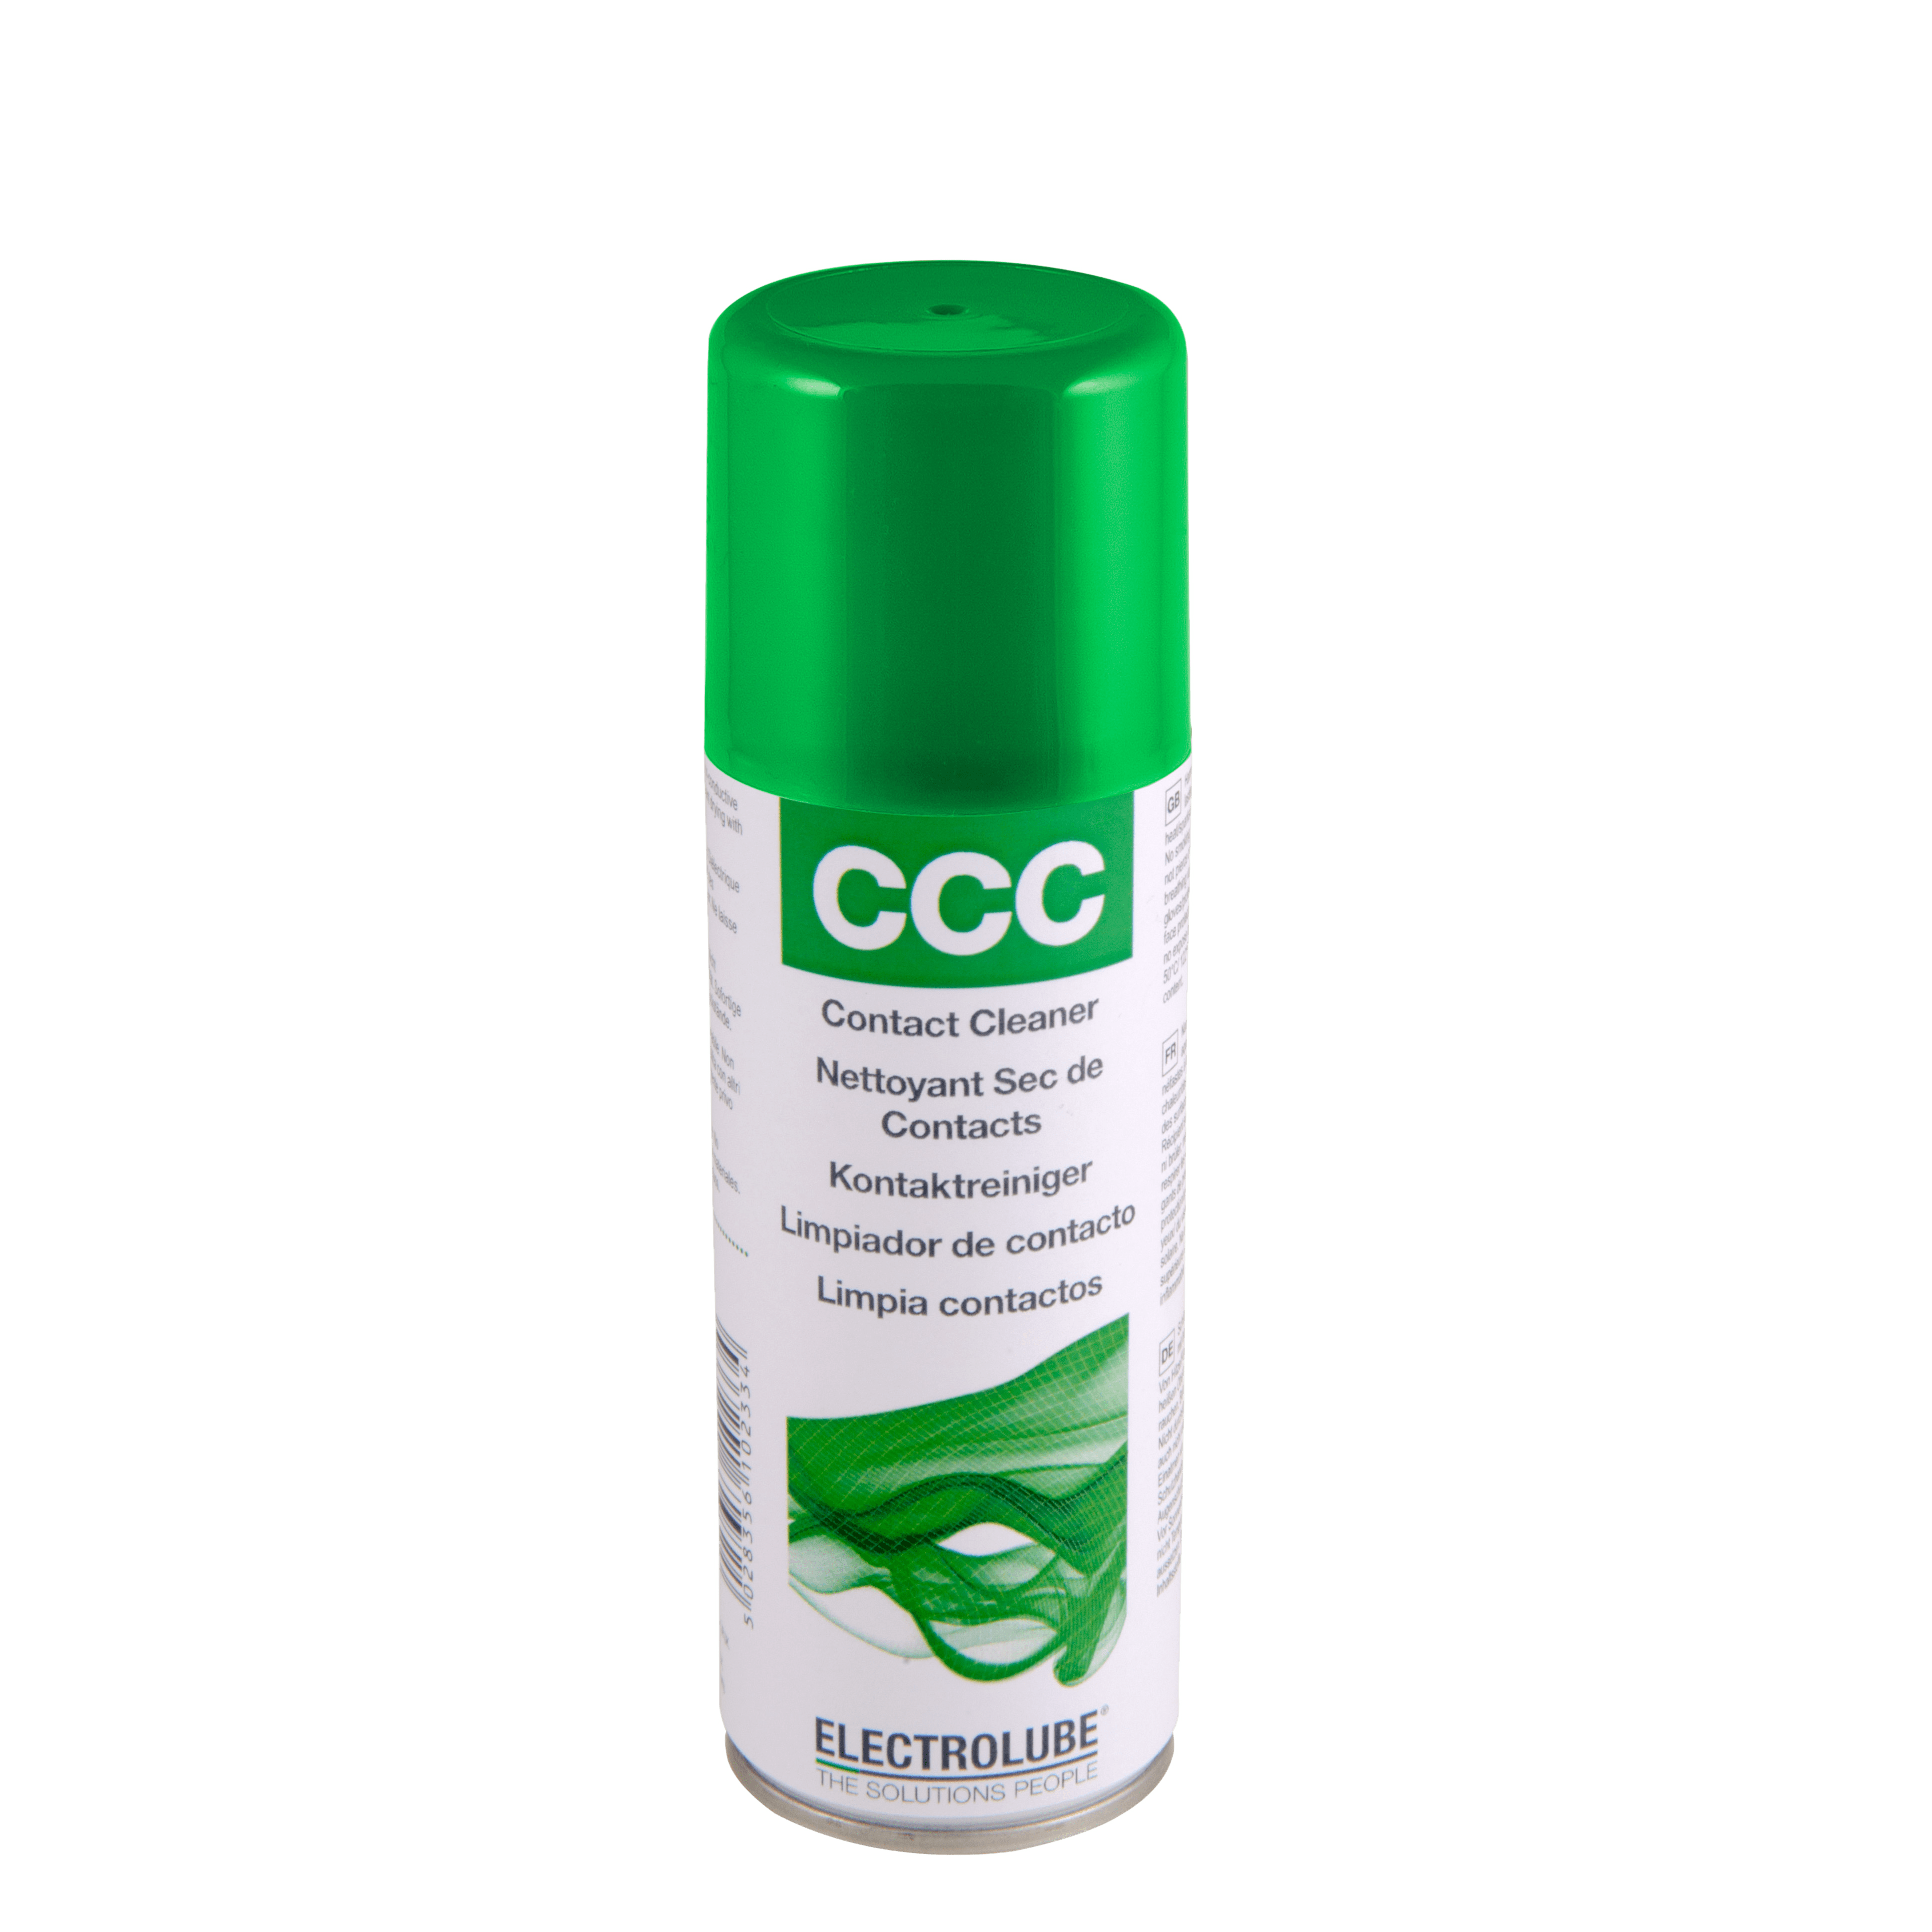 CCC Non-flammable Contact Cleaner Thumbnail